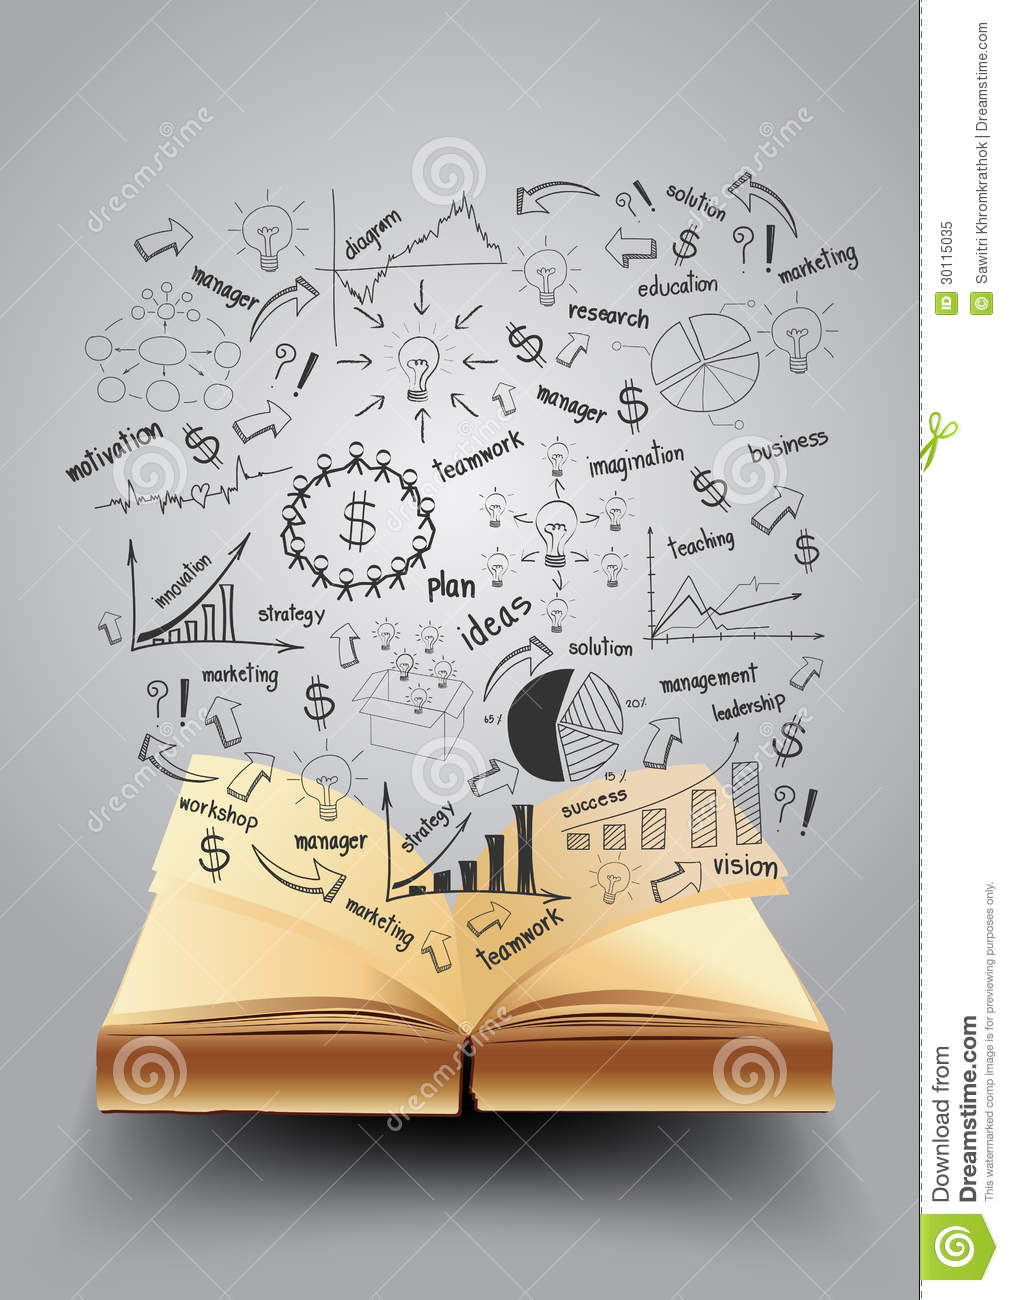 a book review of business policy and strategy Book review of good strategy a coherent strategy co-ordinates policies and actions and creates new strengths through subtle shifts in viewpoint book review: chaotics - the business of managing and marketing in the age of turbulence.